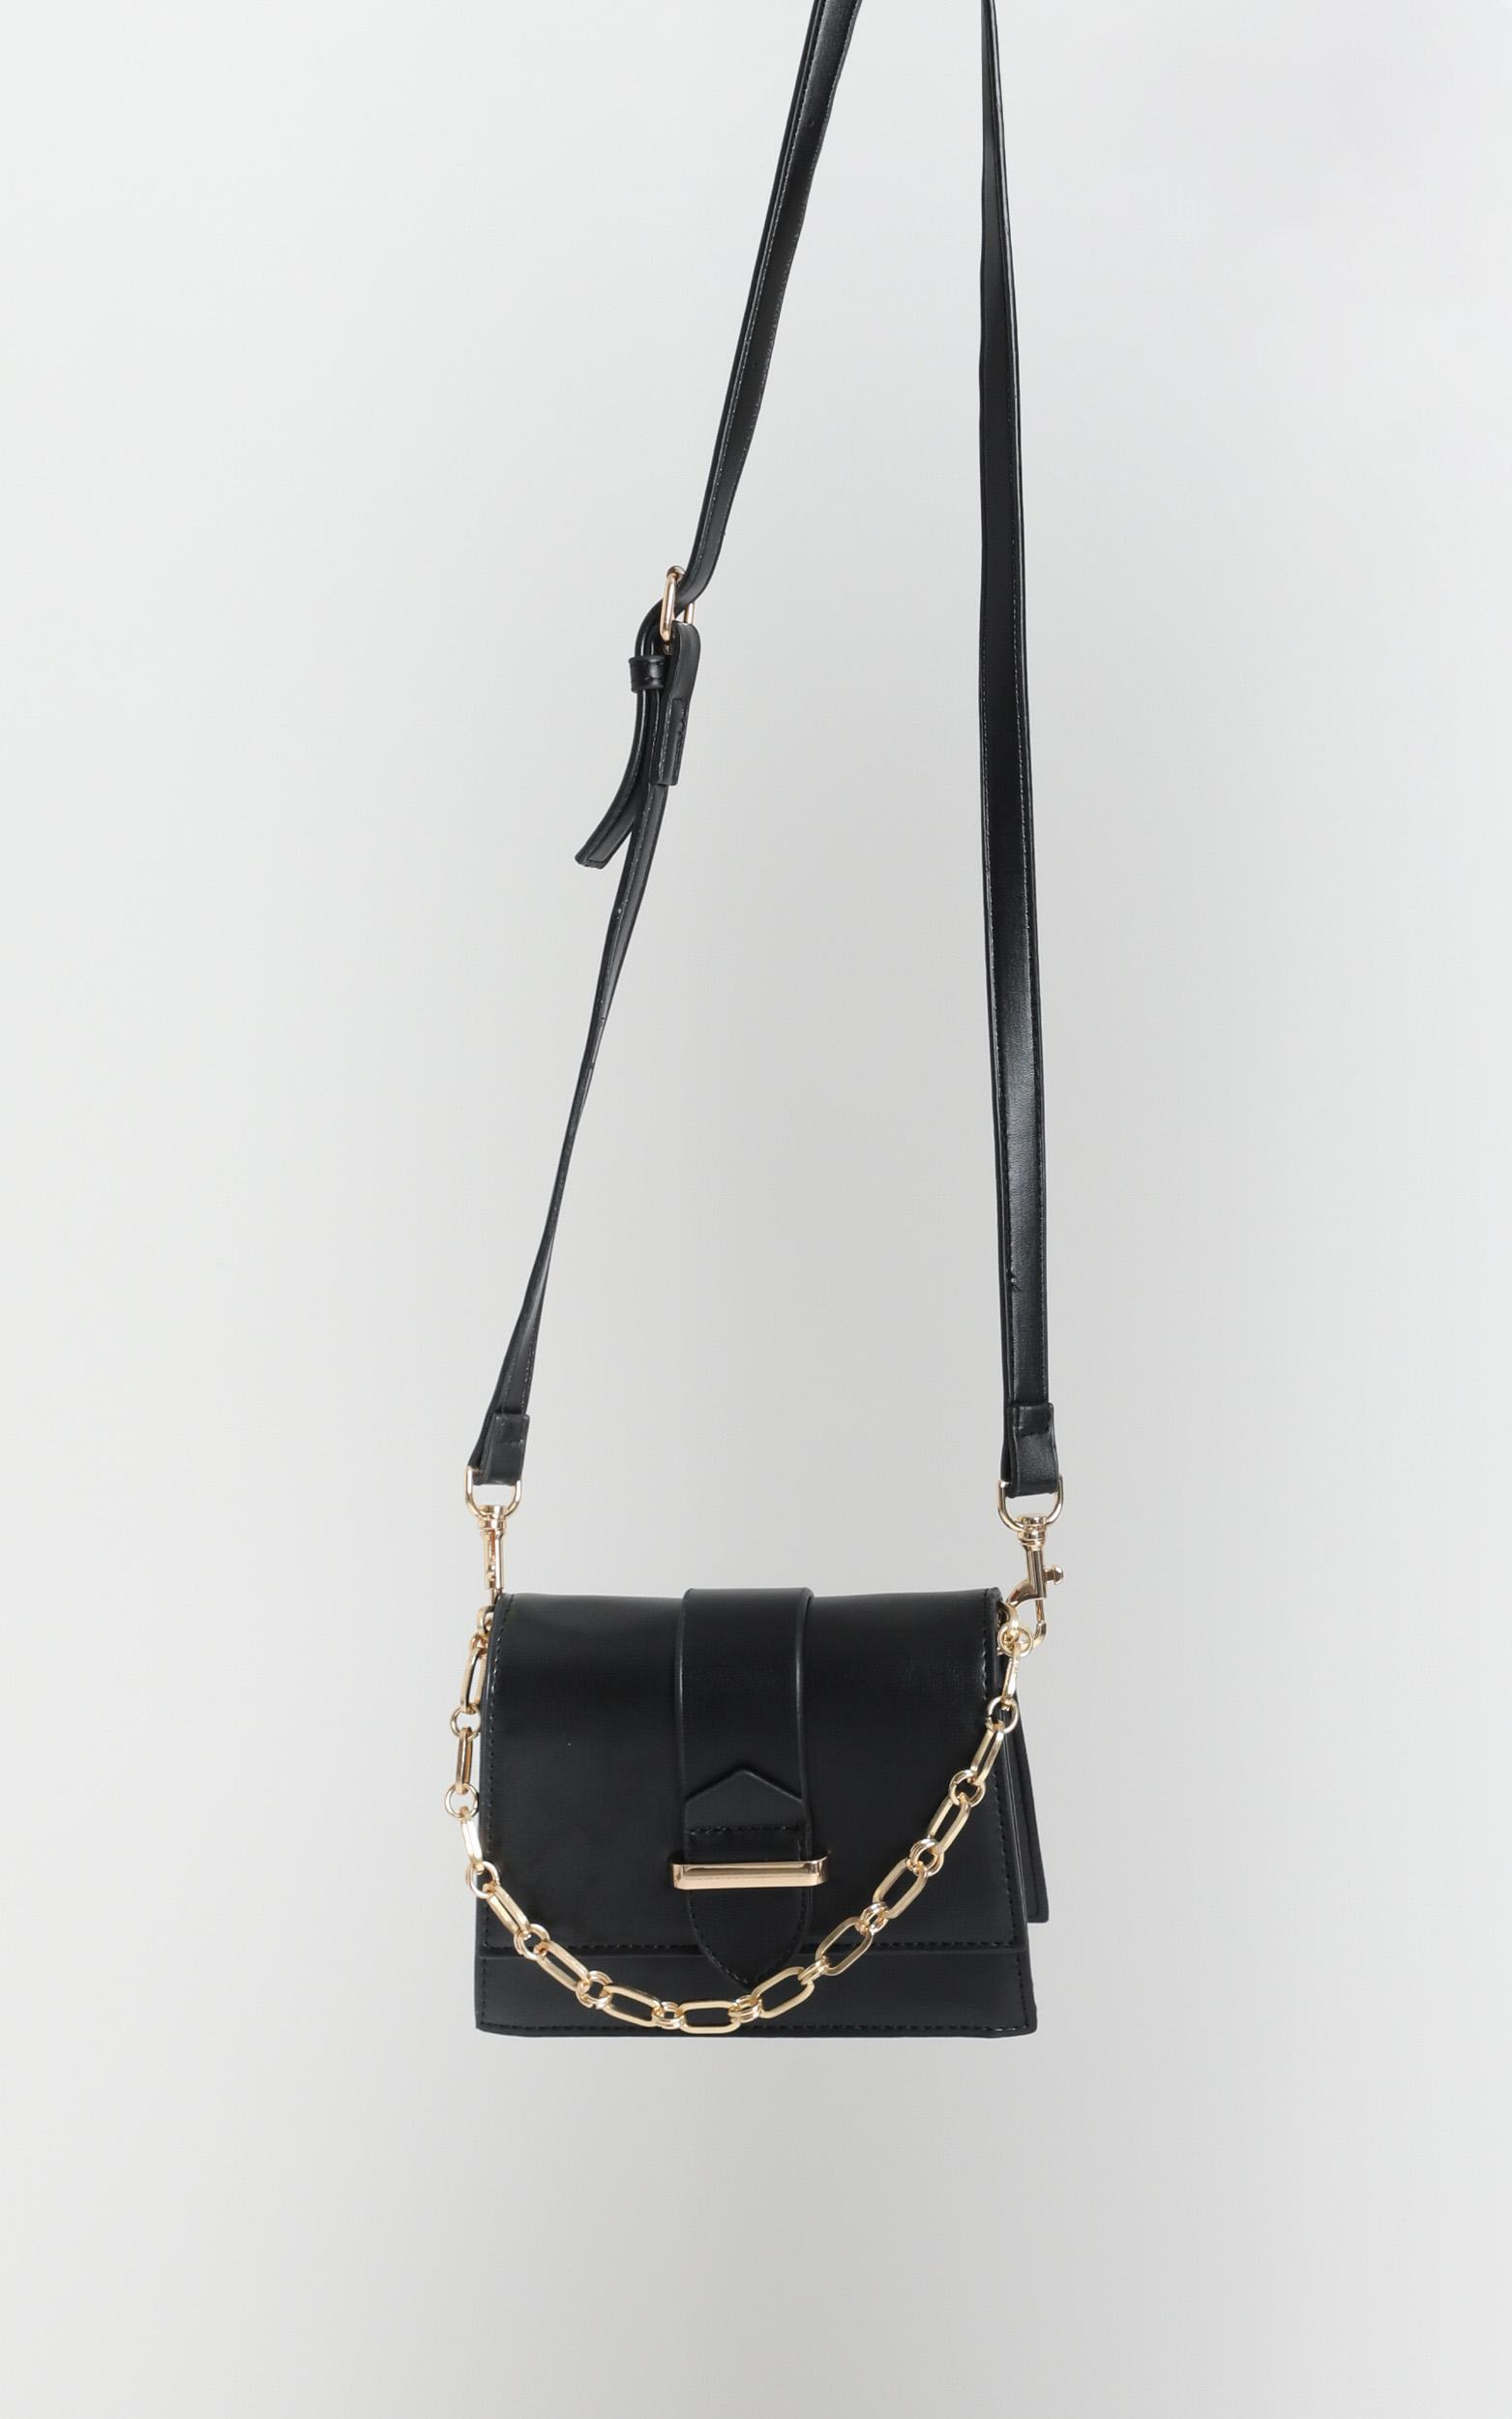 Evening Party Chain Sling Bag In Black And Gold, , hi-res image number null